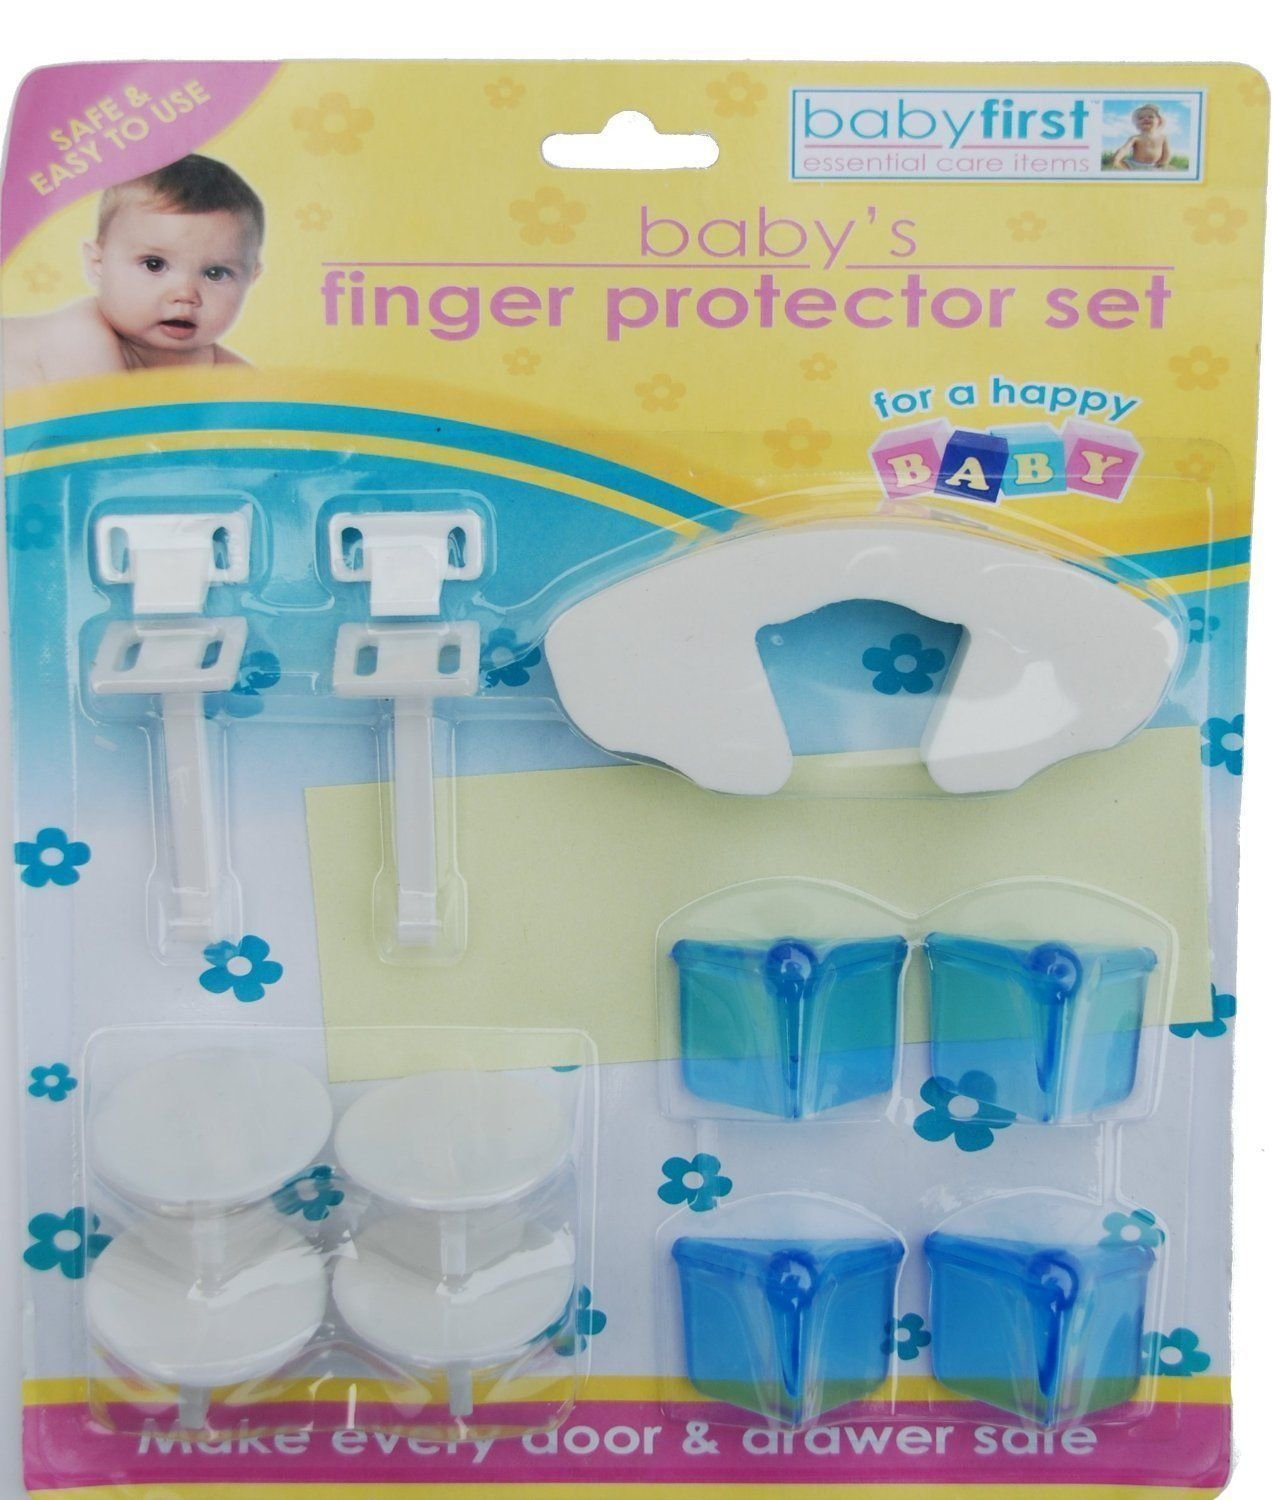 11 Pcs Baby Finger Protector Set Kids Safety Plug Socket Furniture Corner Covers by Lizzy® Baby First